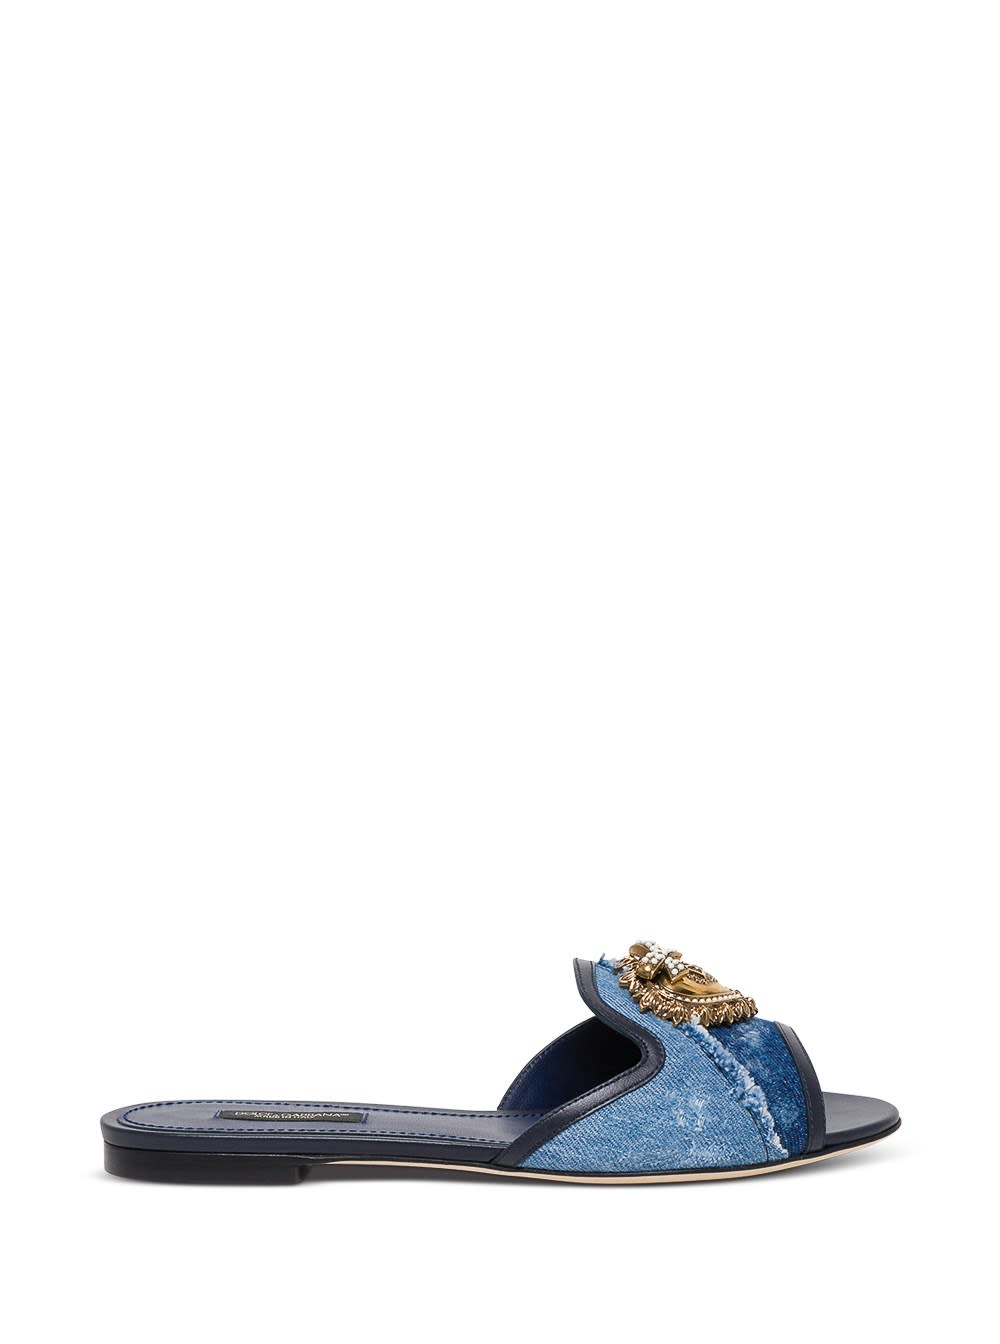 Buy Dolce & Gabbana Devotion Mule In Denim With Logo online, shop Dolce & Gabbana shoes with free shipping